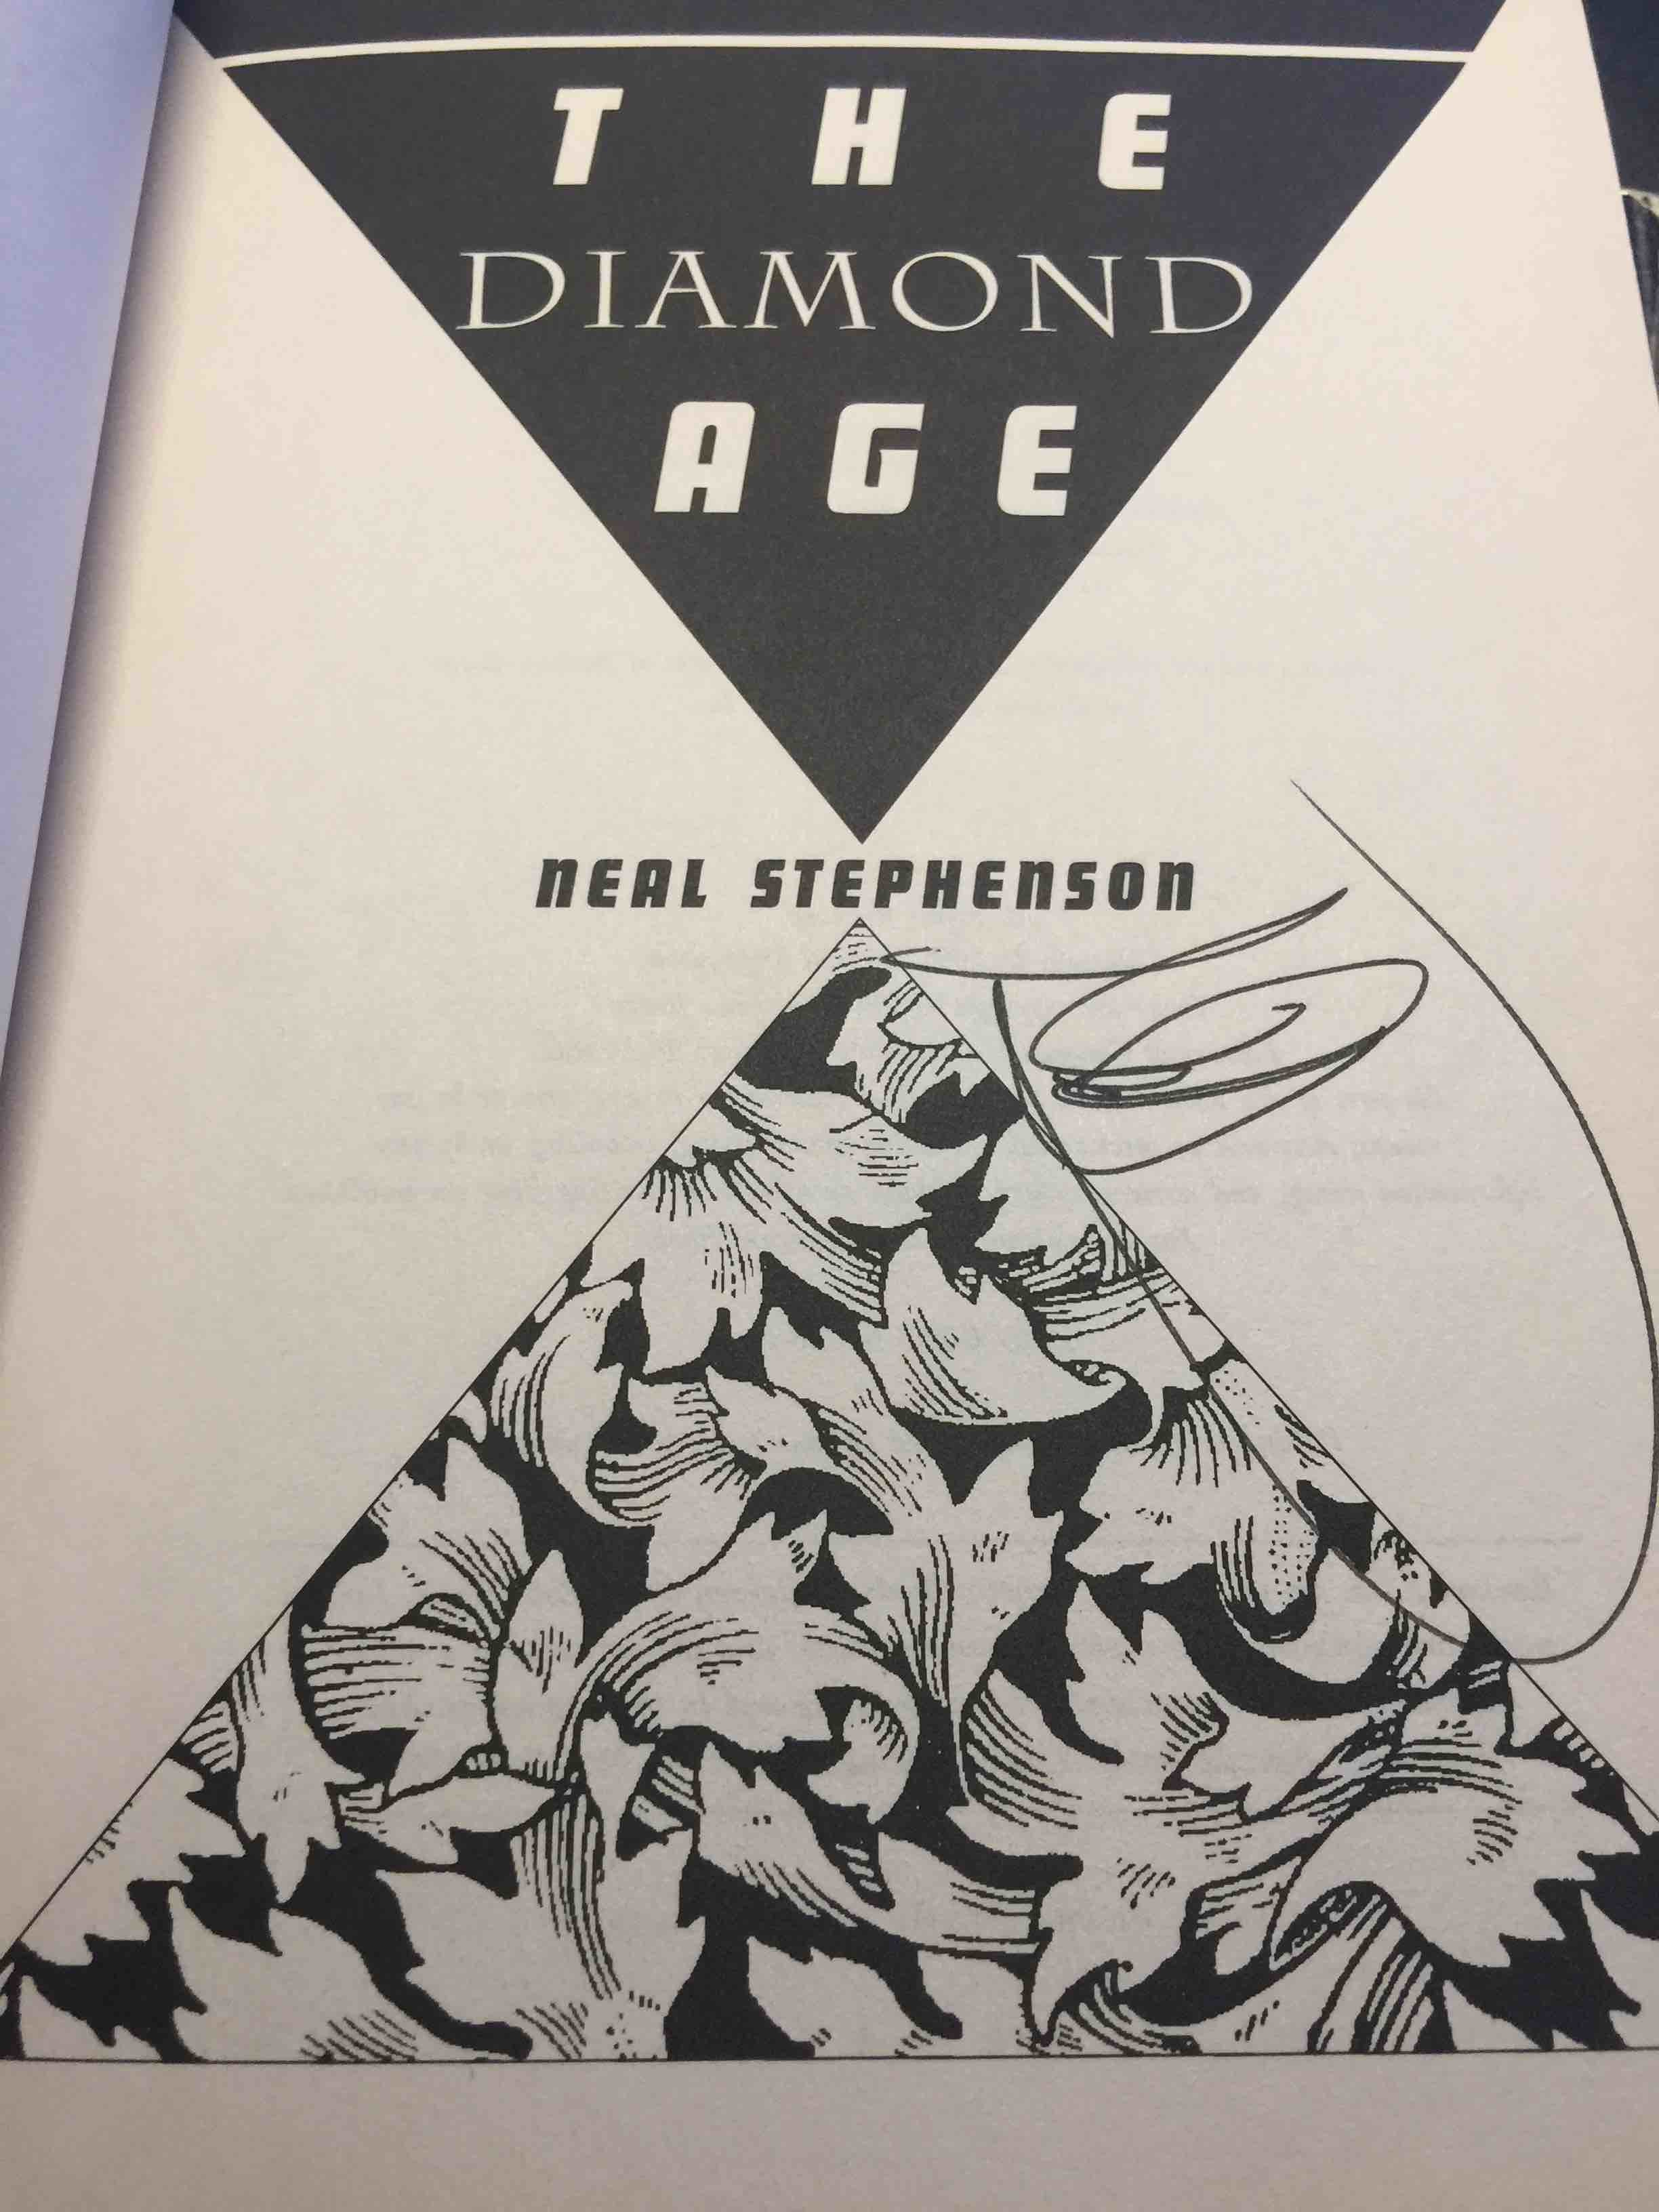 diamond age Now, in the diamond age, he delivers another stunning tale set in 21st-century shanghai, it is the story of what happens when a state-of-the-art interactive device falls into the hands of a street urchin named nell.